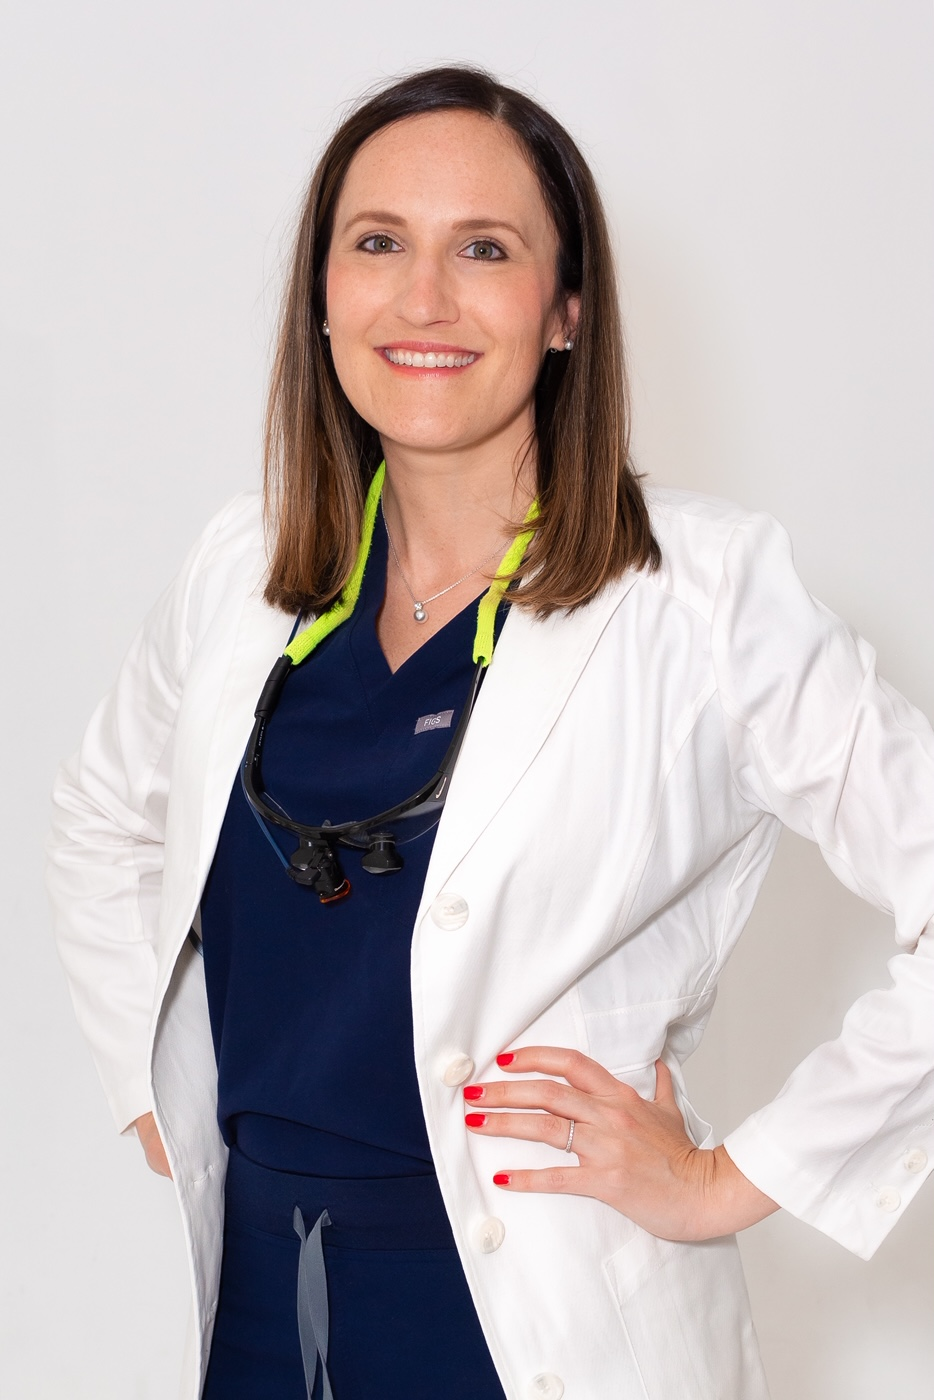 Dr. Kate Mann, DMD - Dr. Mann grew up in Bergen County and graduated from Vassar College with two degrees in Biology and Art History, obtained her D.M.D. at Rutgers School of Dental Medicine in New Jersey, and completed advanced training in a General Practice Residency at Jersey City Medical Center.With both private and group practice experience in the North Jersey area, Dr. Mann is skilled in all facets of general dentistry including rotary endodontics, crown and bridge, implant restorations and oral surgery.